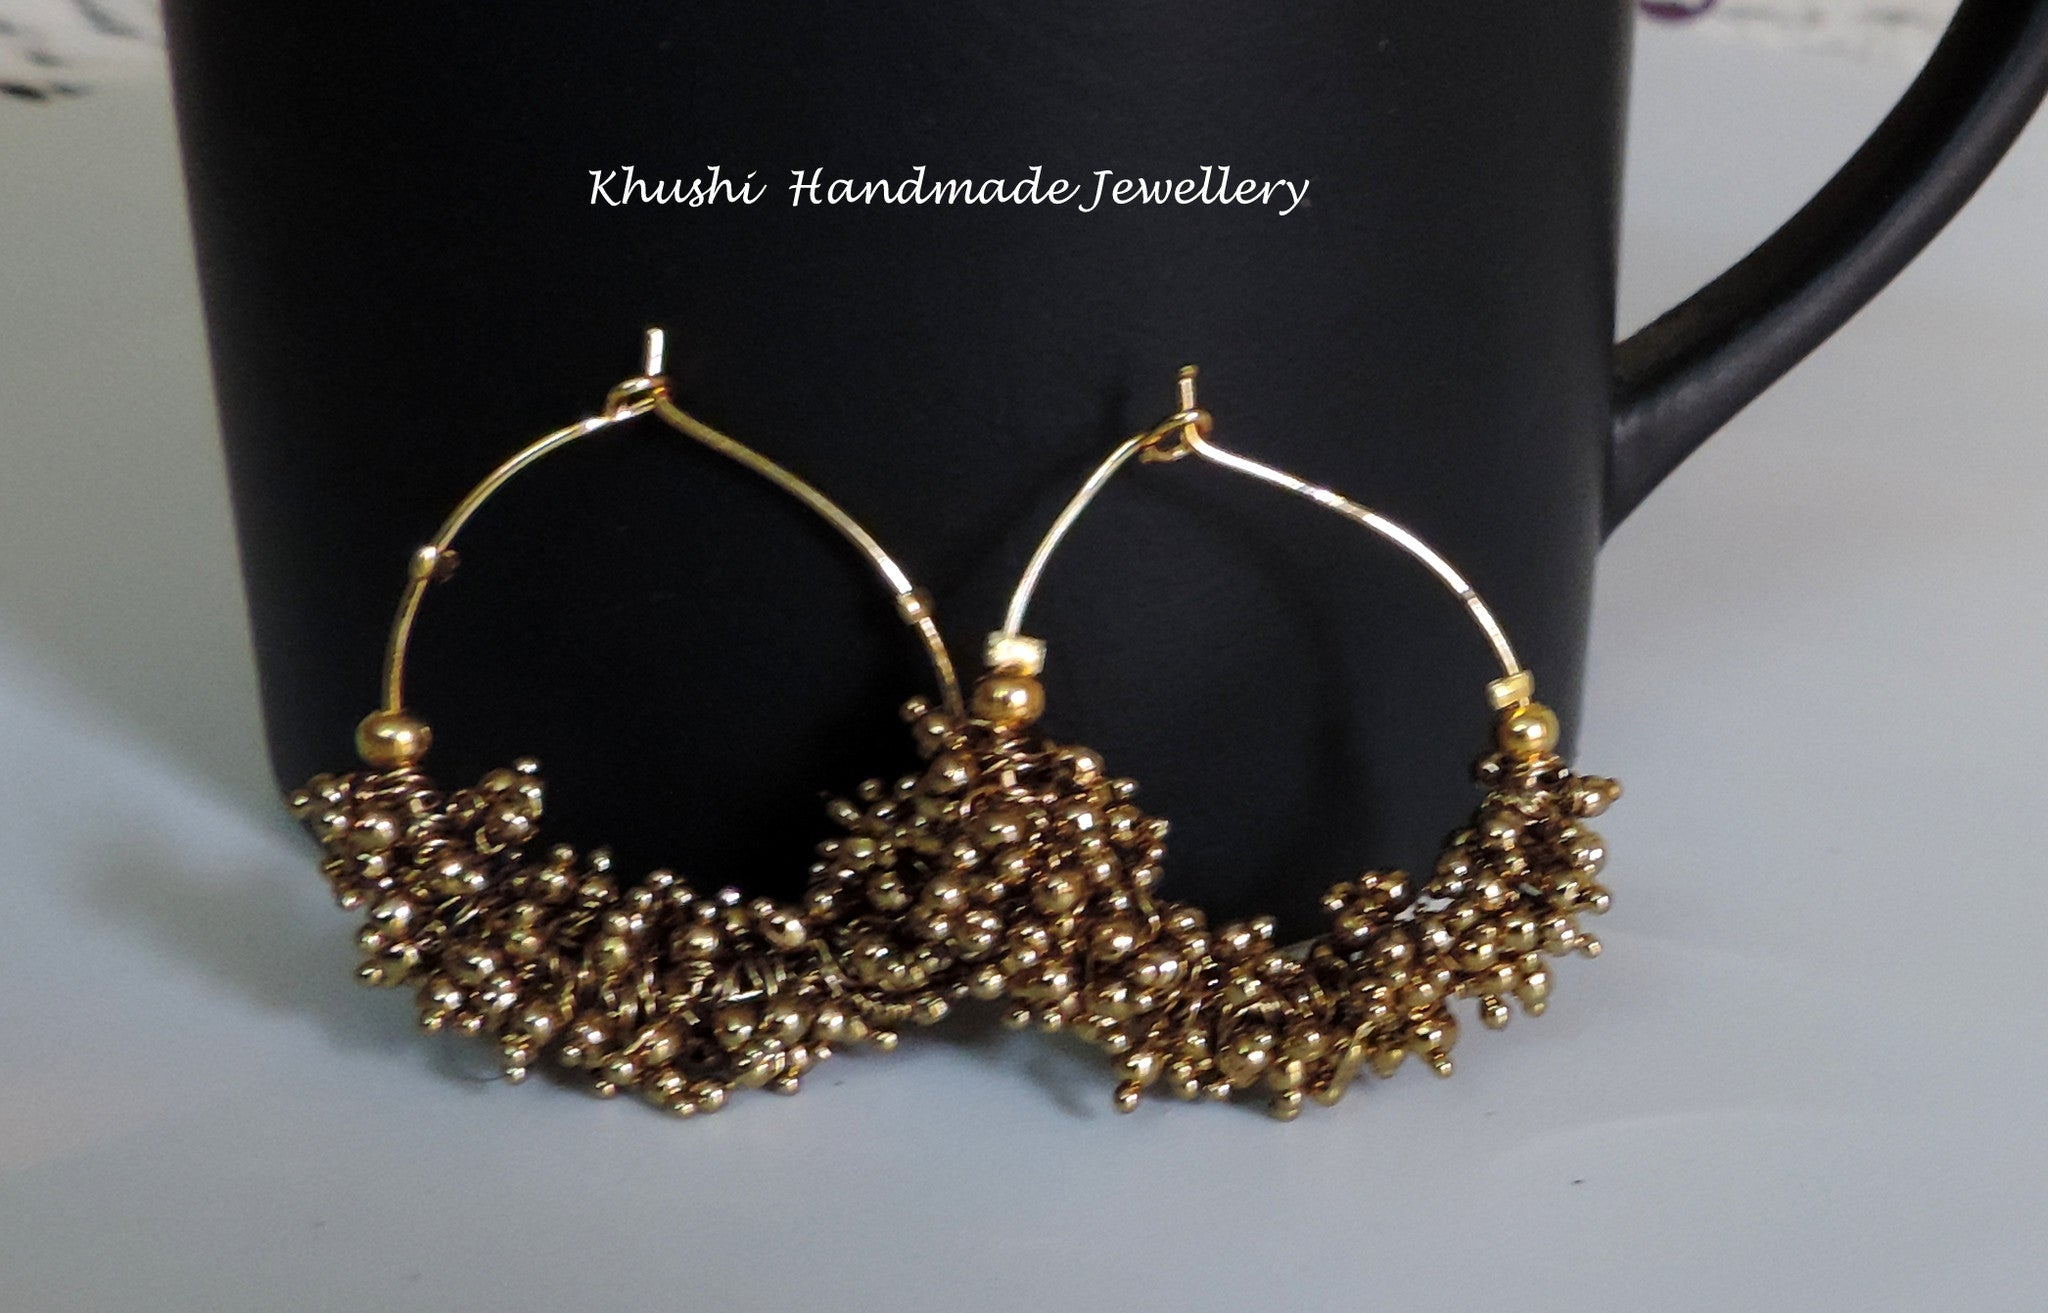 Handcrafted gold hoops - Khushi Handmade Jewellery